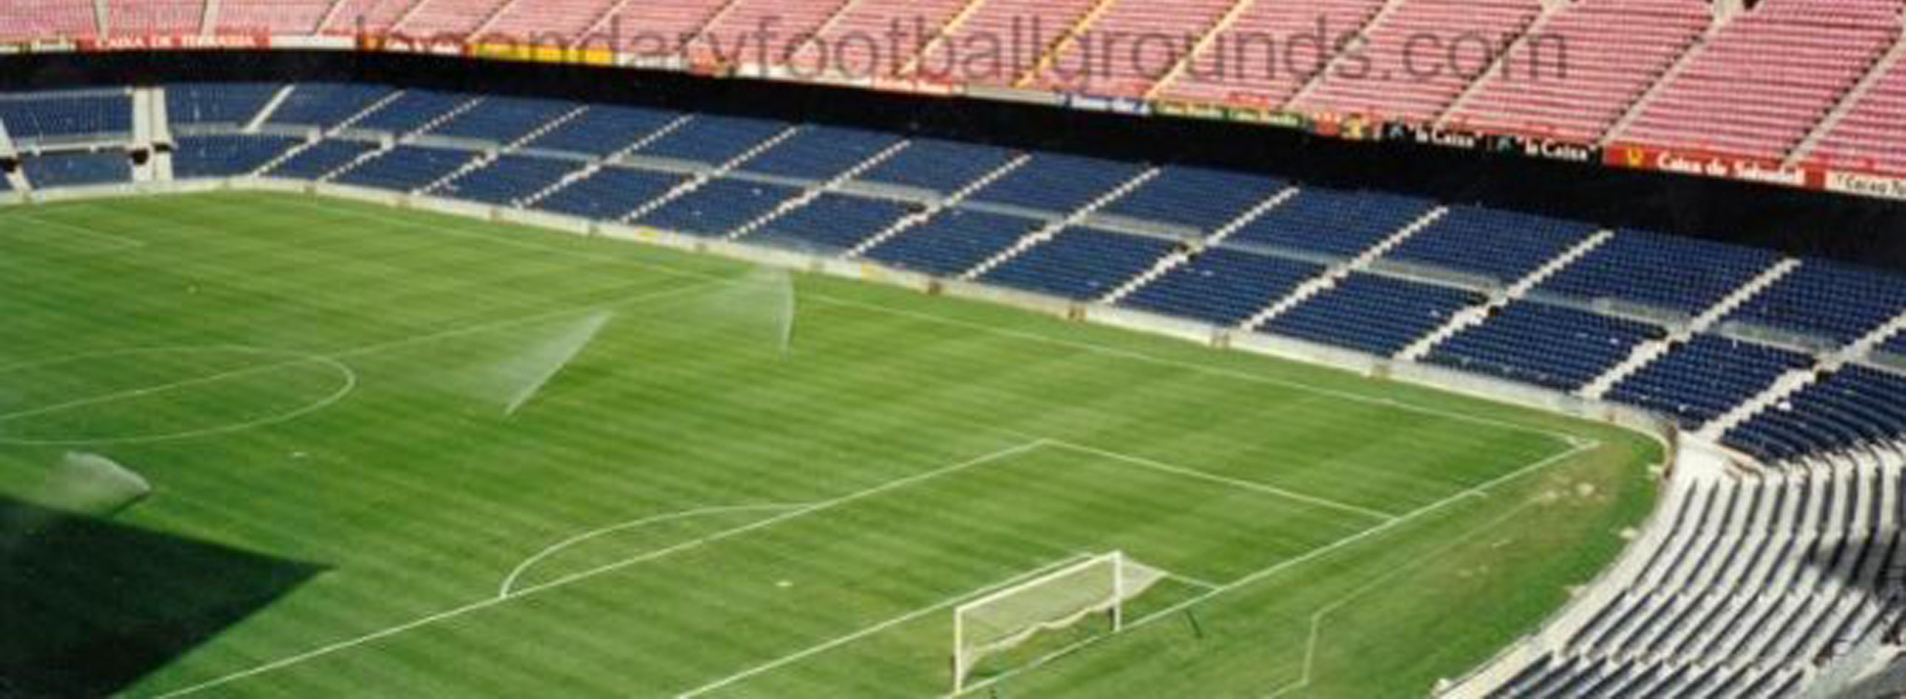 resized-Barcelona-Nou-Camp-East-Side-1-March-1995_small-e1440199128465